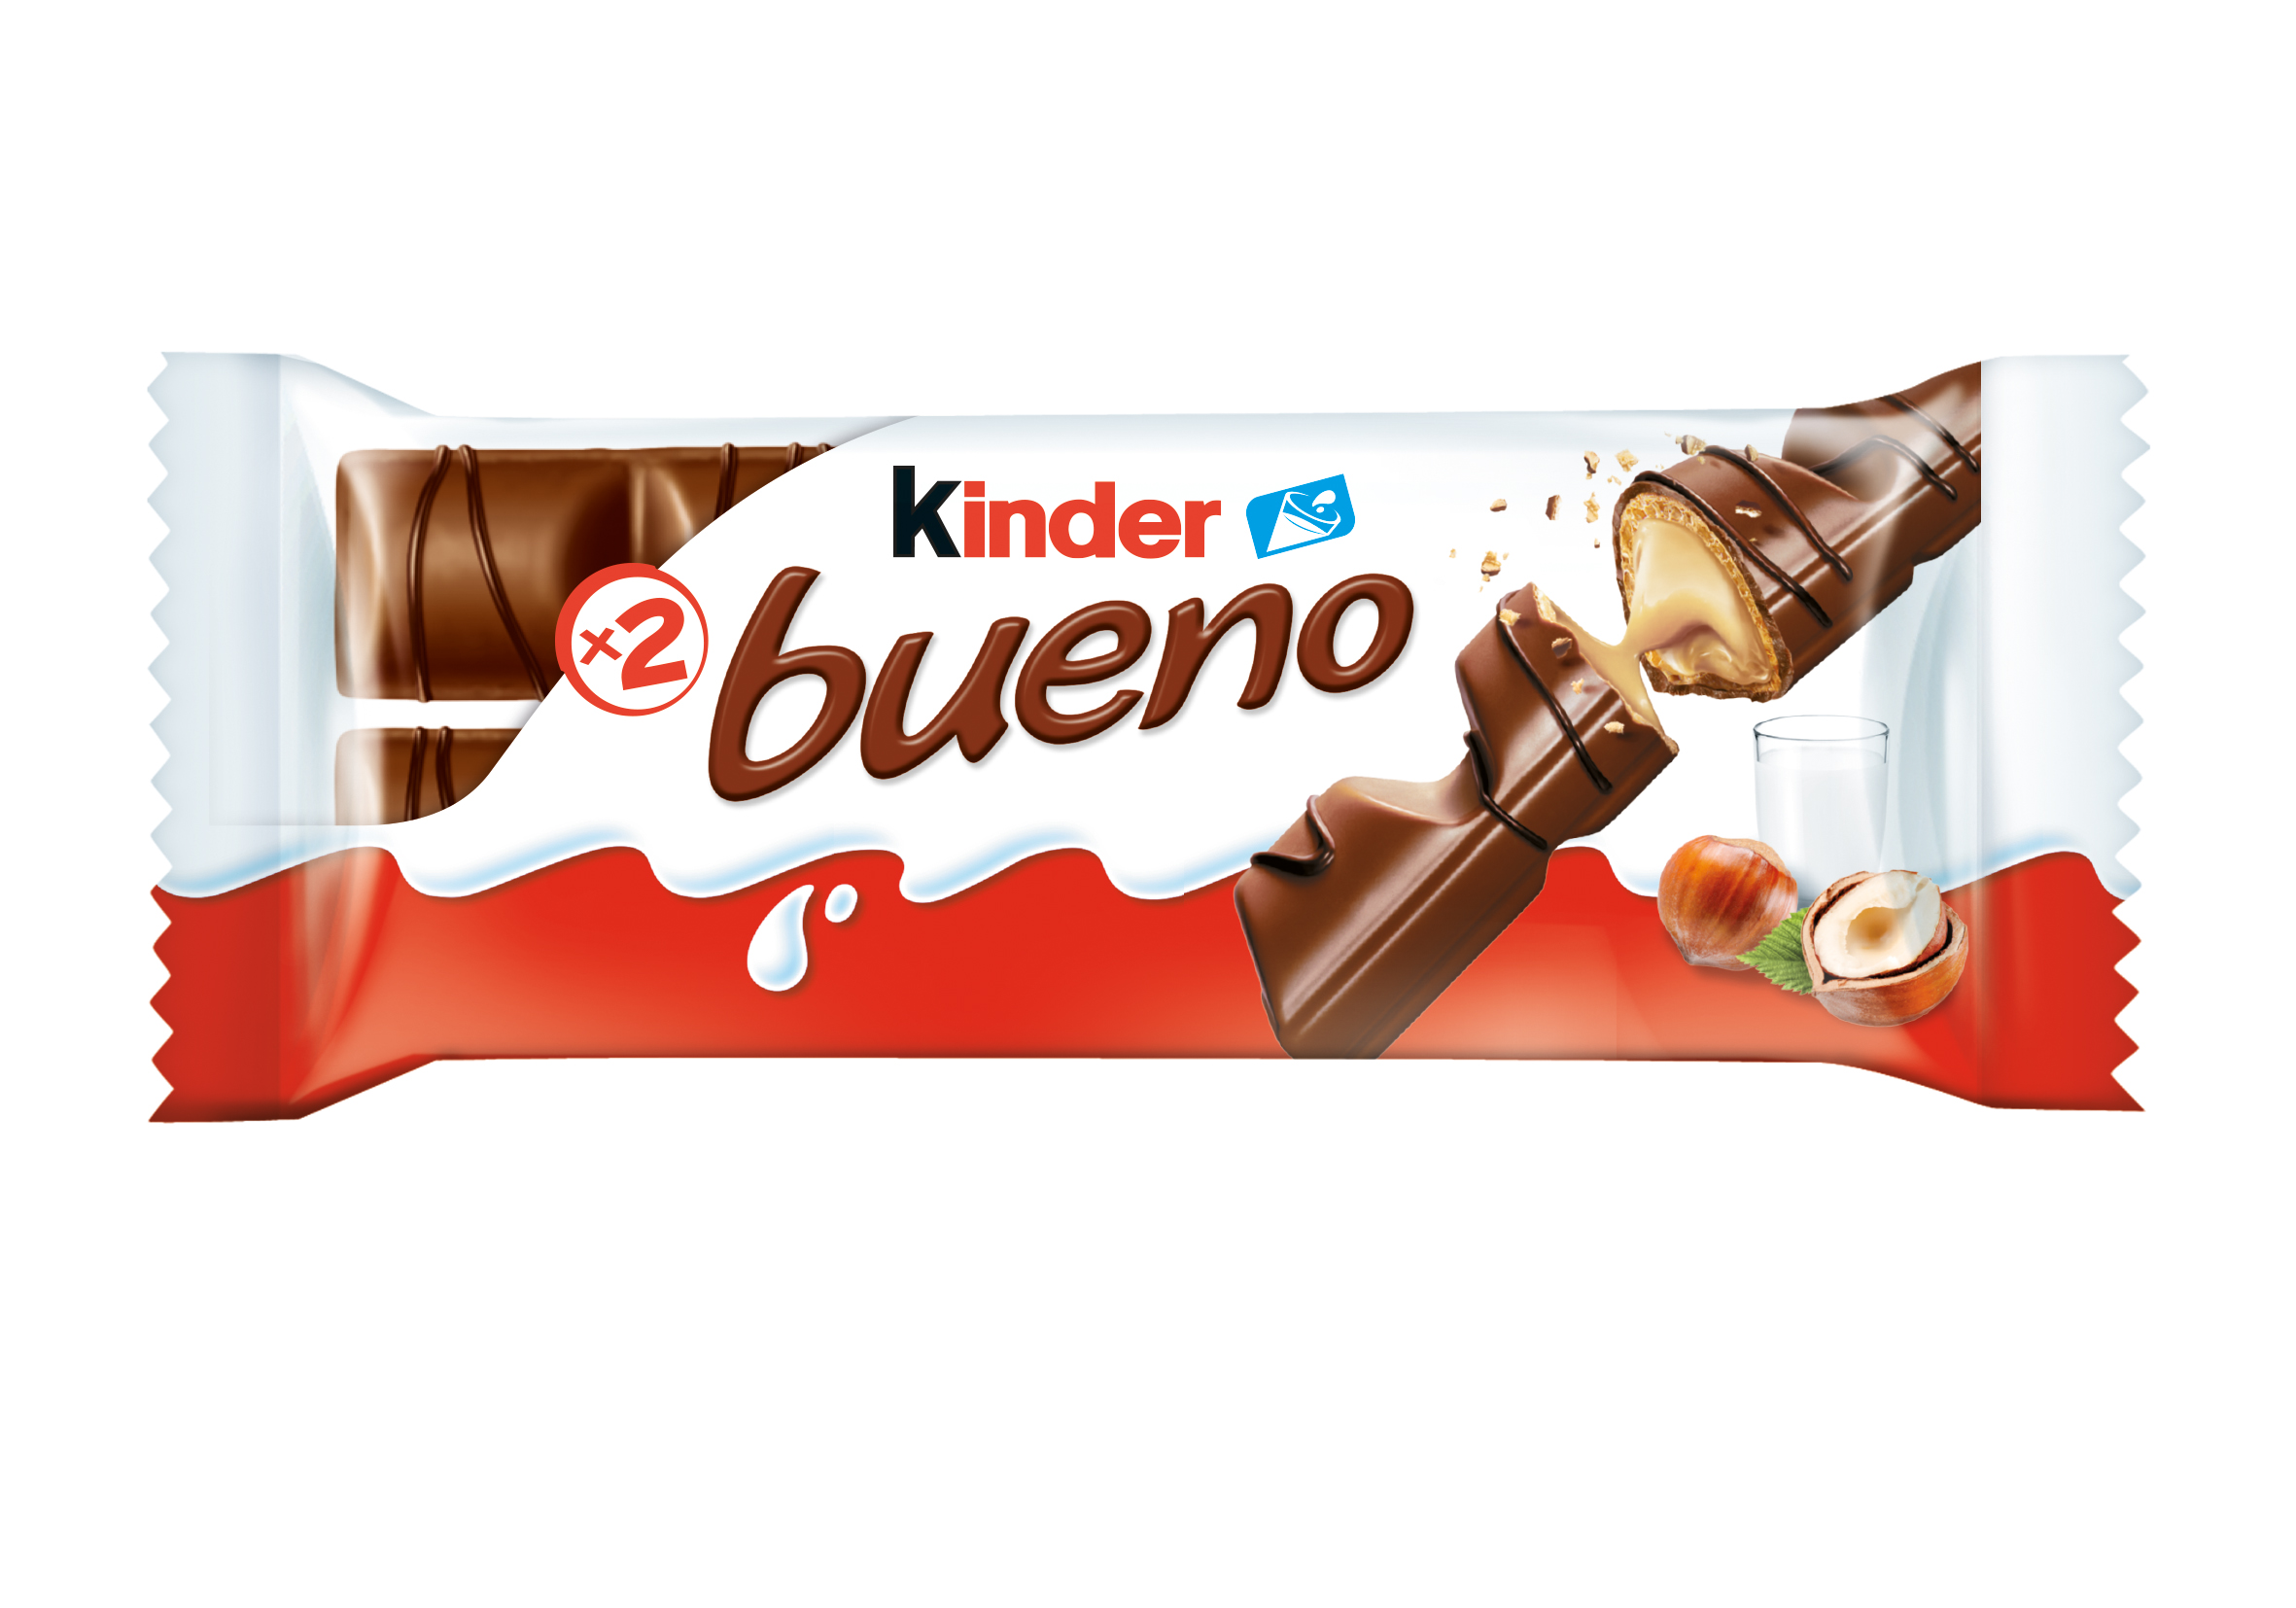 snack chocolate bar kinder bueno t2 BE-NL